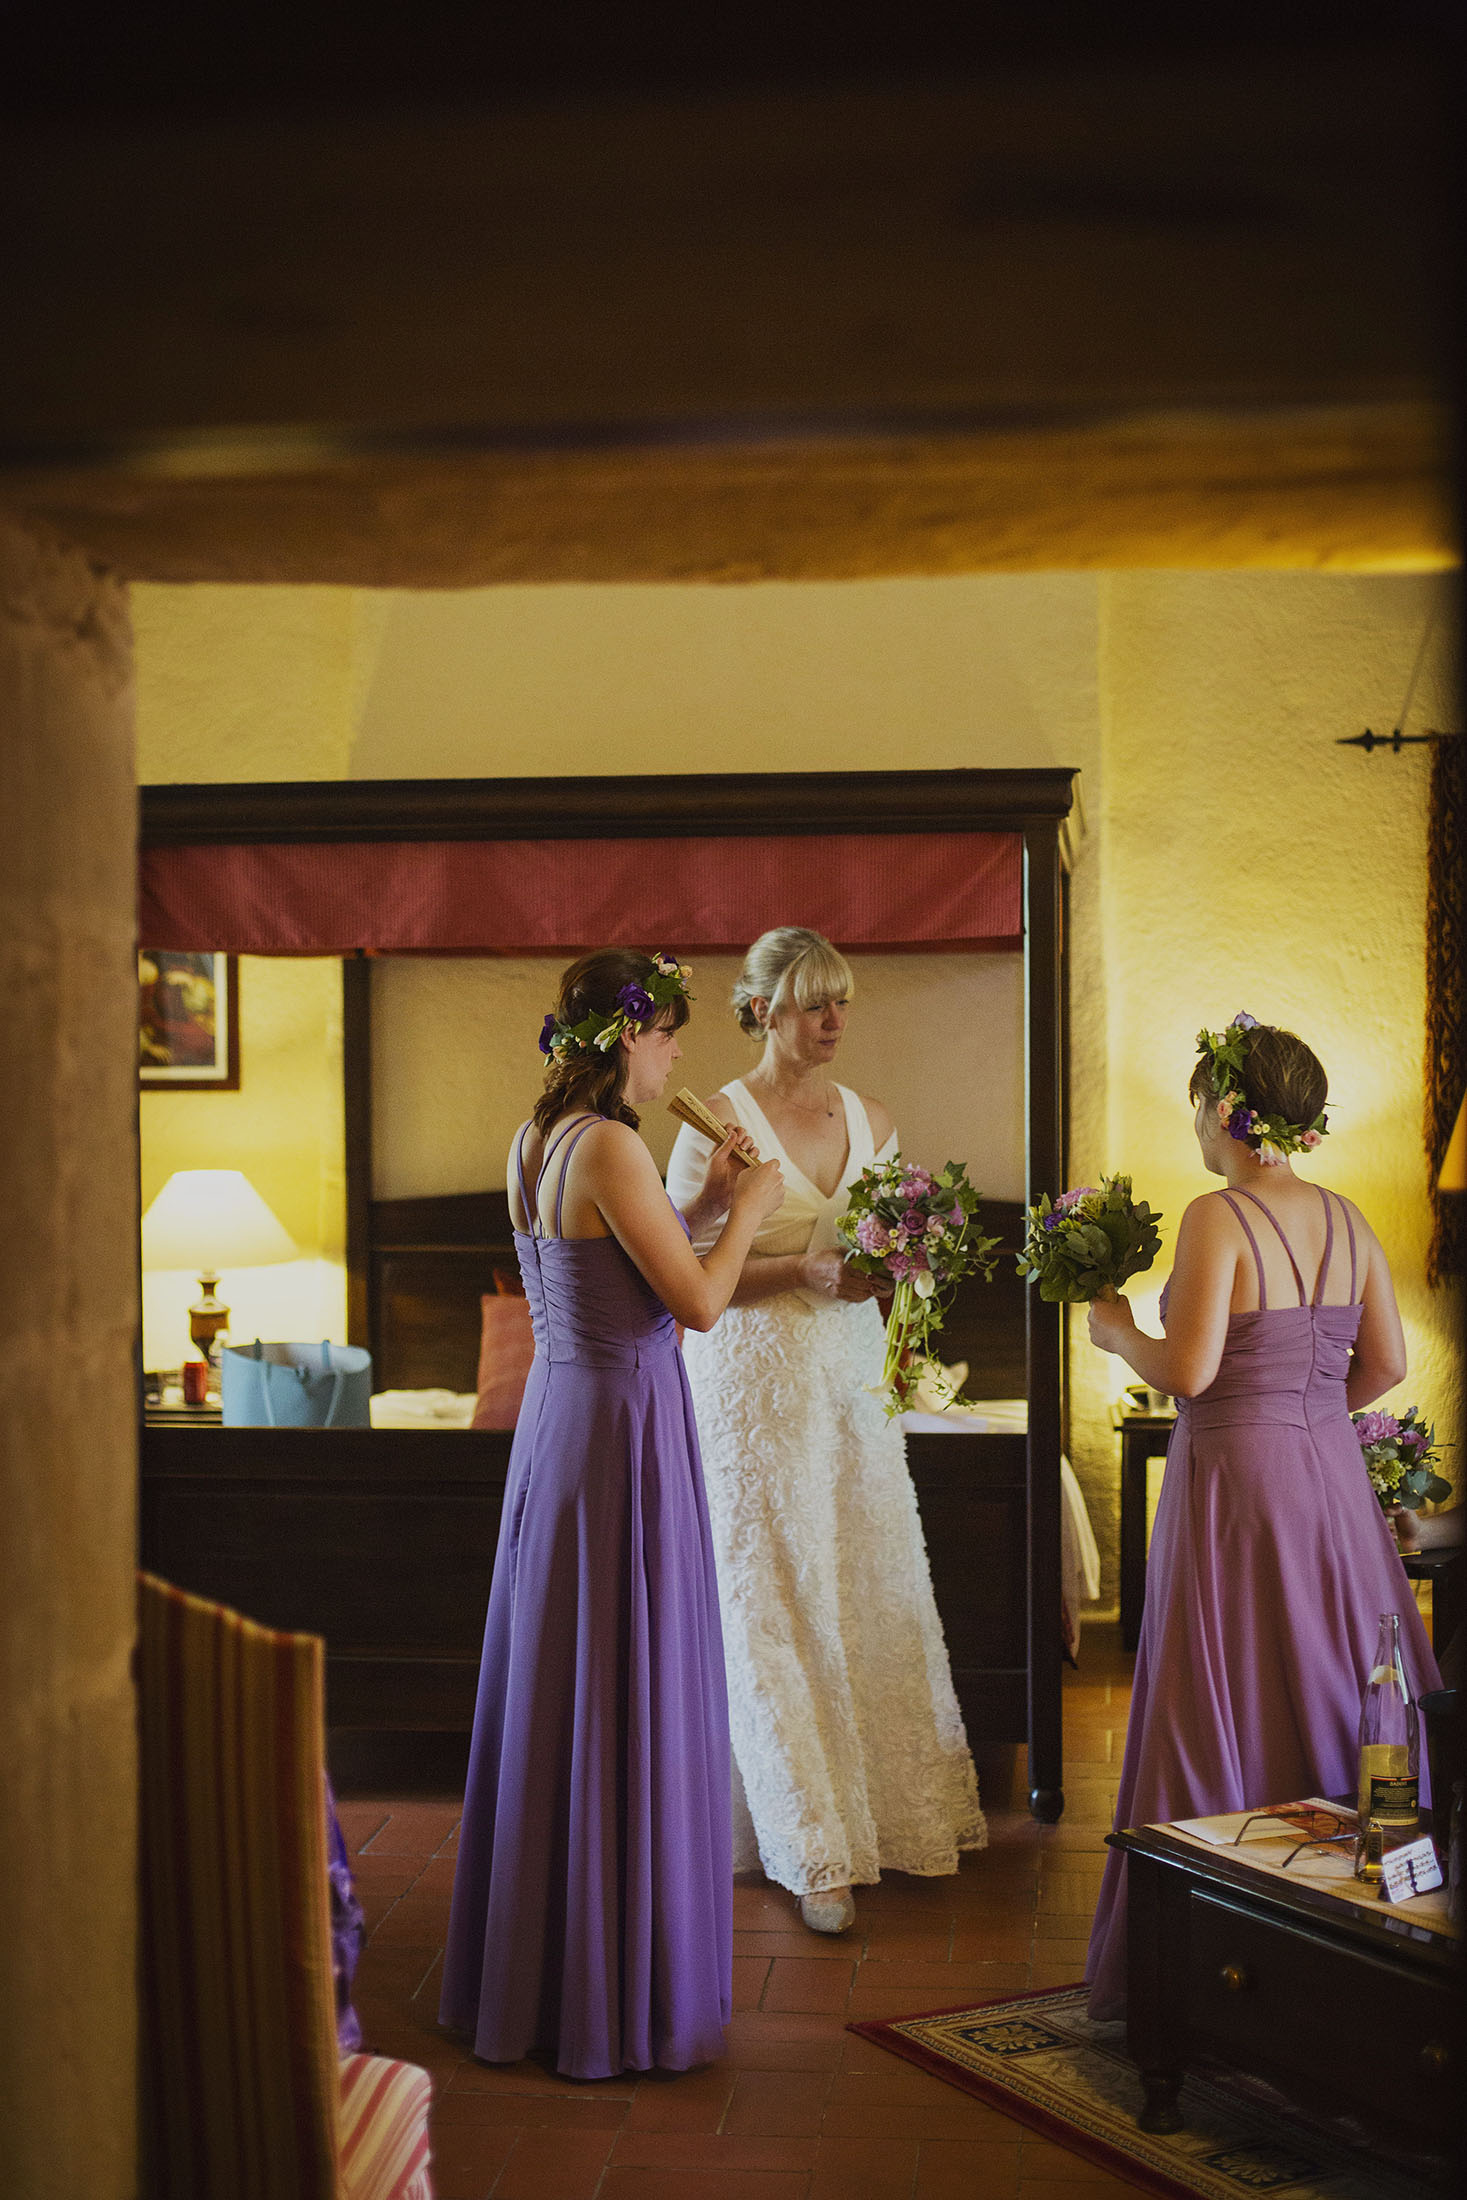 bridal preparations at chateaux des ducs de joyeuses france destination wedding photography